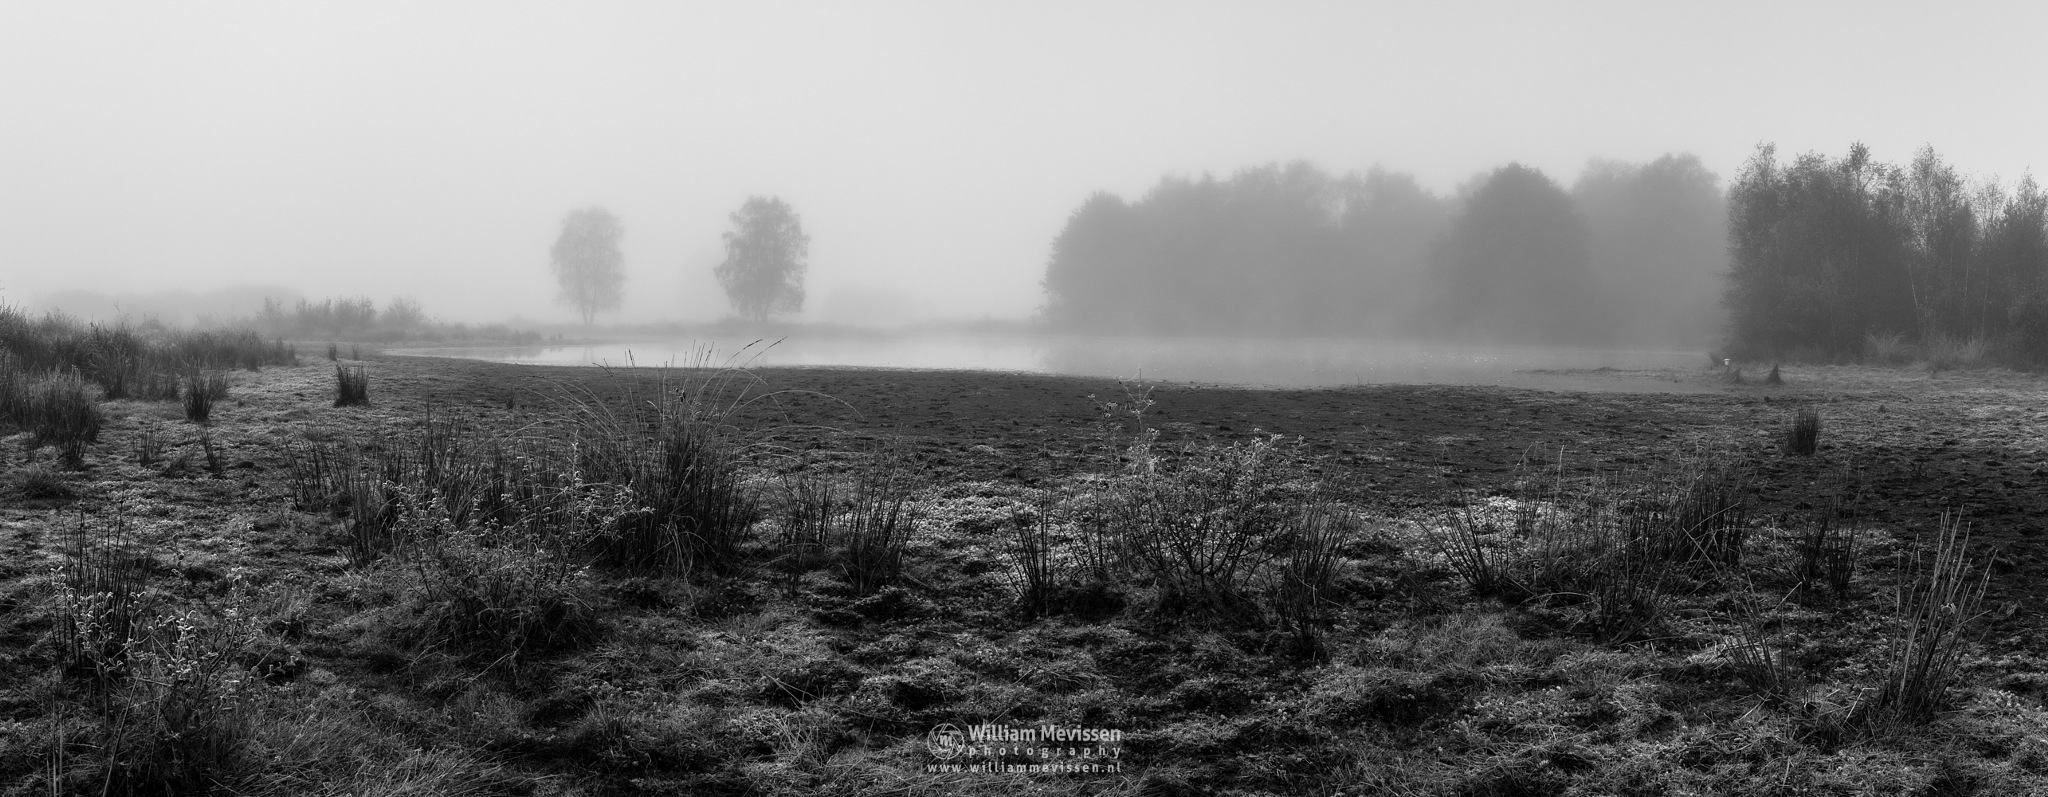 Misty Rondven by William Mevissen